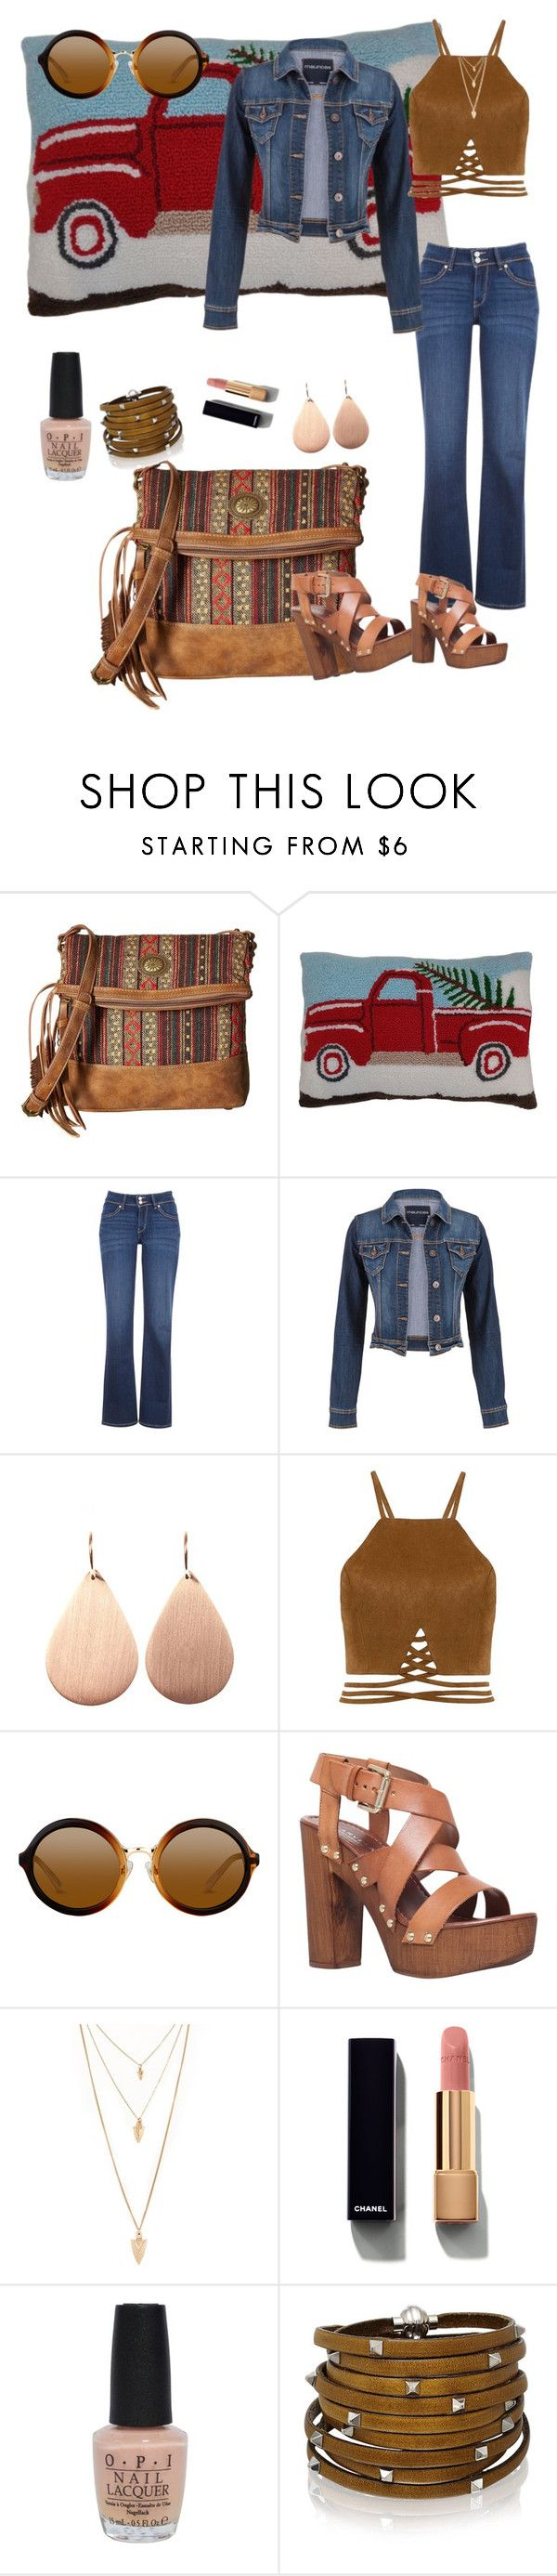 """""""Runnin Down the Road"""" by klm62 ❤ liked on Polyvore featuring American West, St. Nicholas Square, Levi's, maurices, Irene Neuwirth, Carvela, Forever 21, Chanel, OPI and Sif Jakobs Jewellery"""